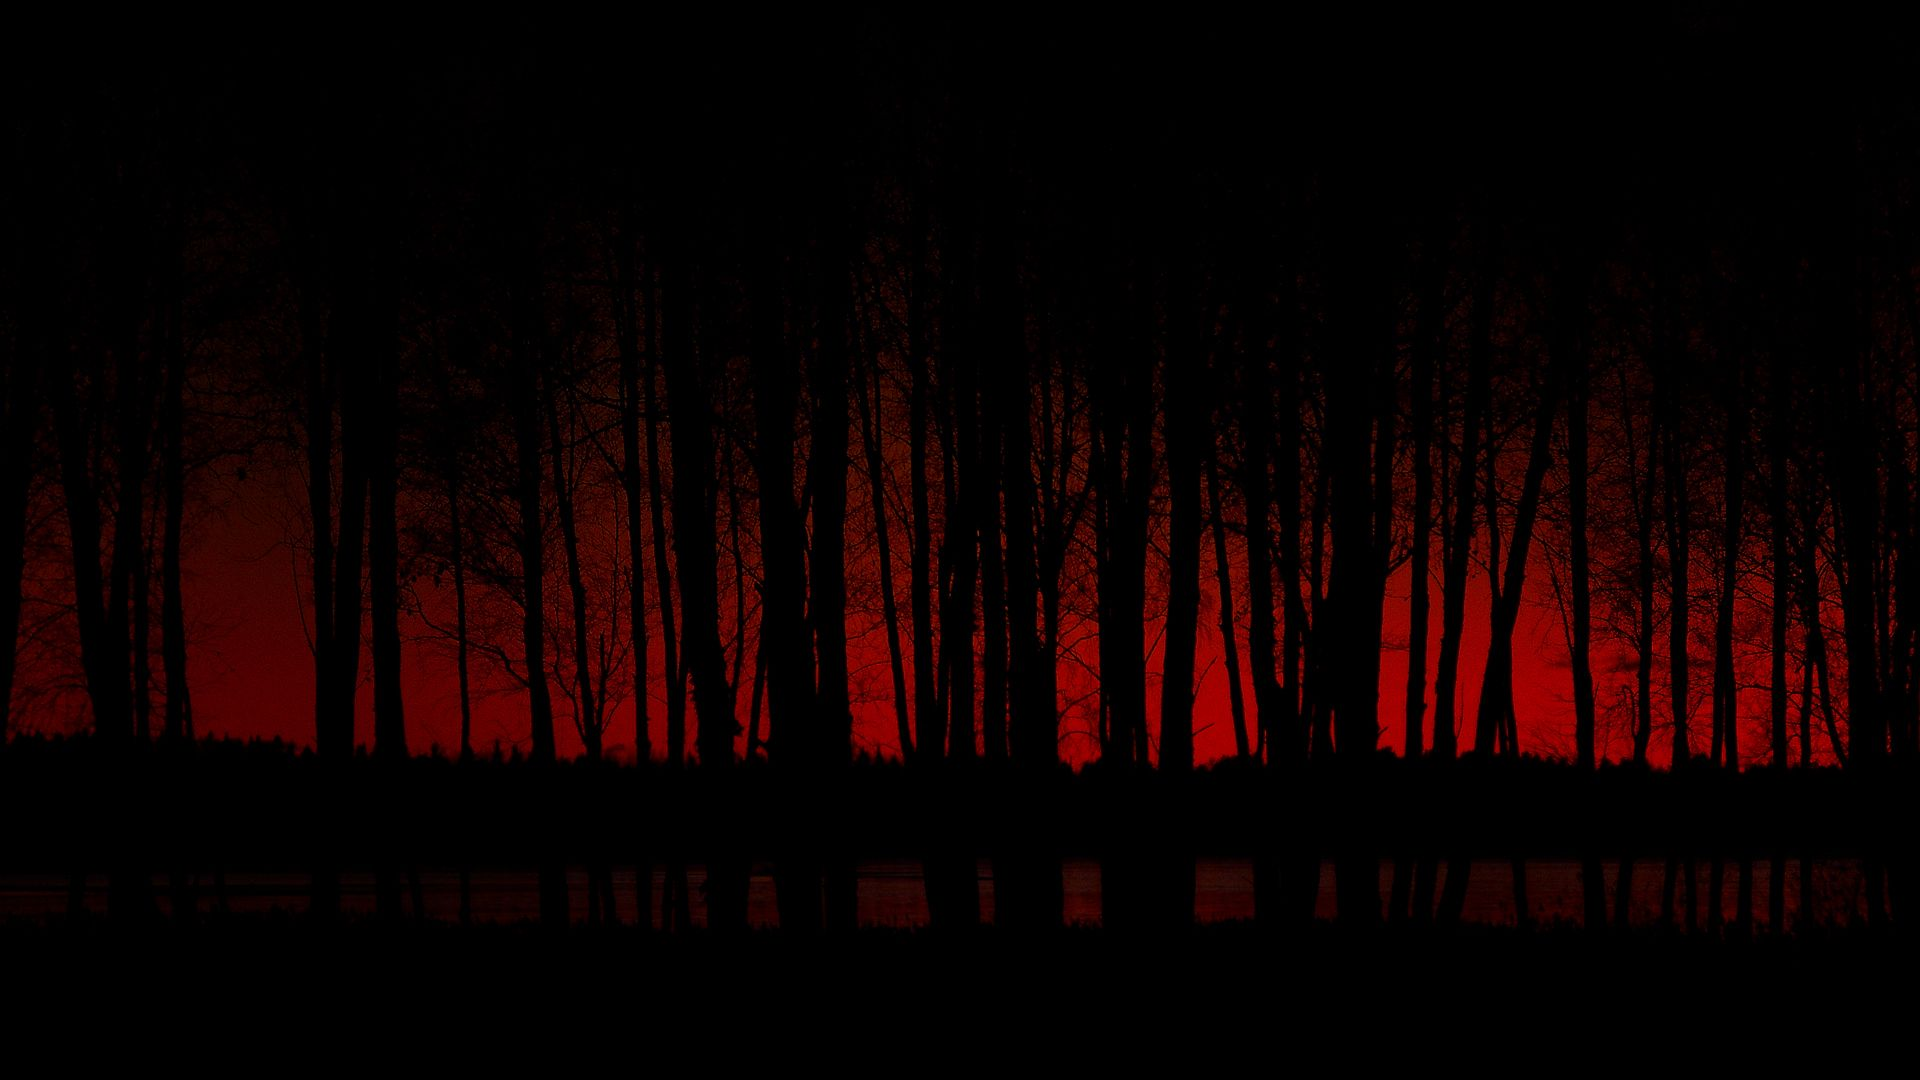 Night Forest Desktop Background Hd Wallpaper Computer